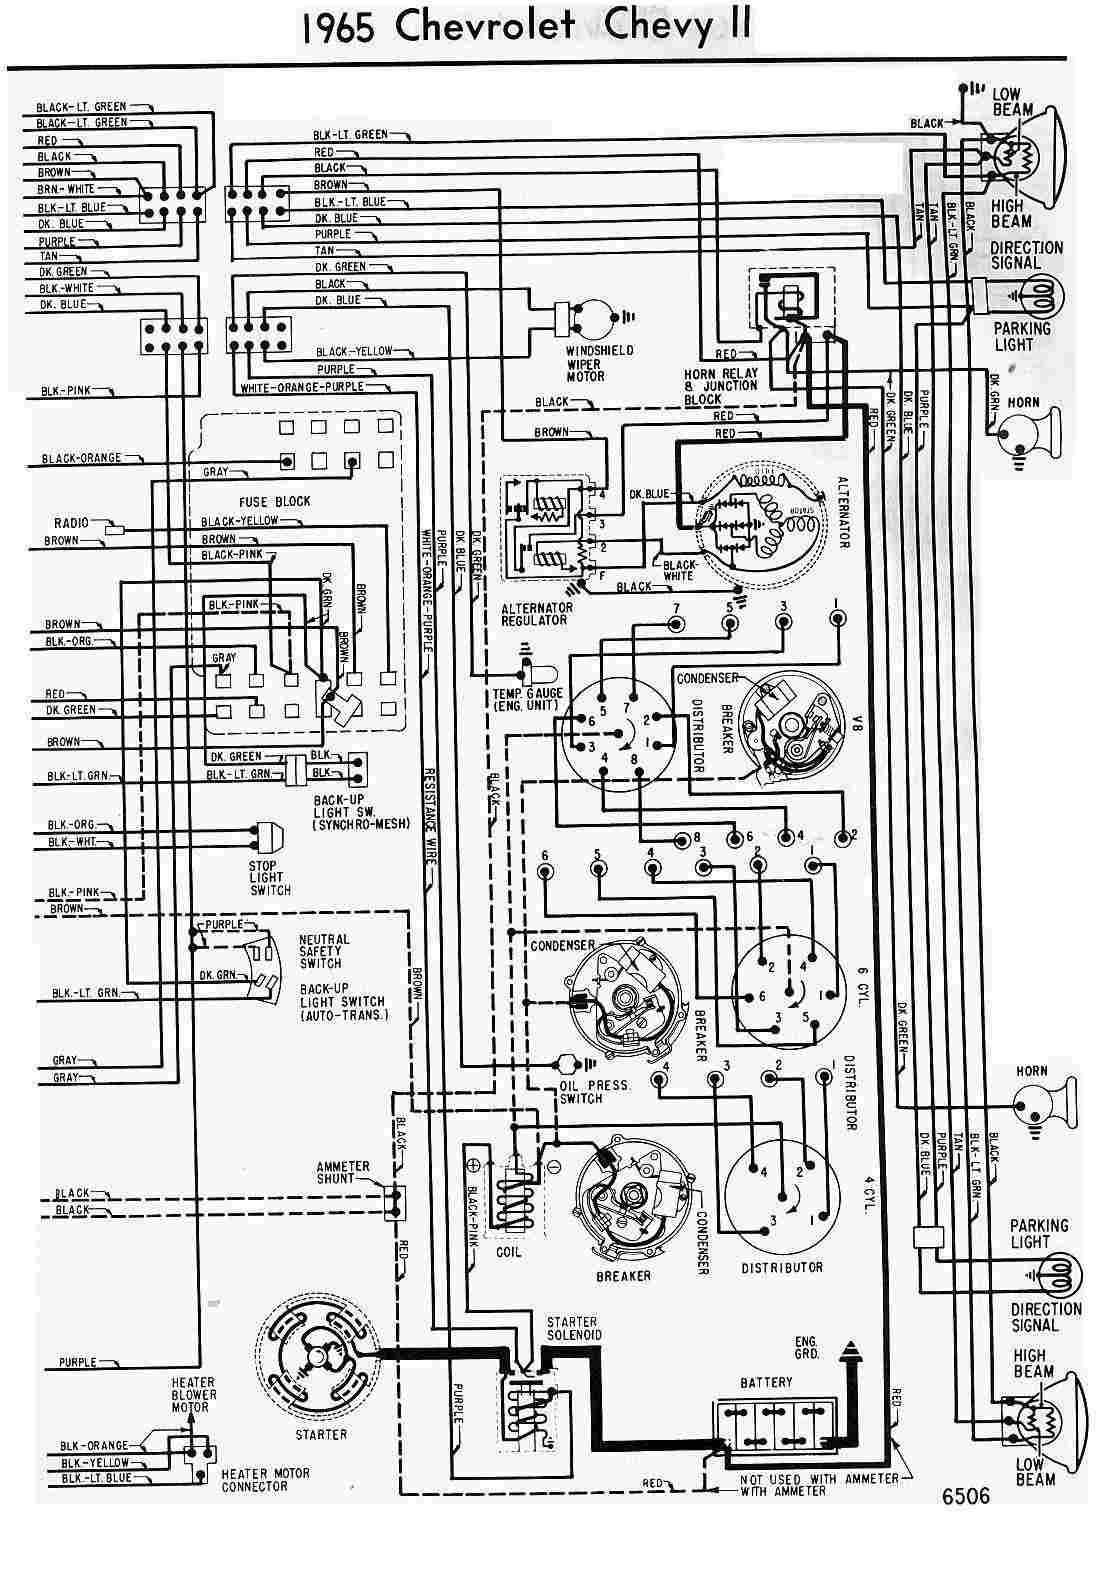 hight resolution of 1976 corvette dash wiring diagram schematic simple wiring diagramswiring diagram 1964 chevy corvette wiring diagrams 1977